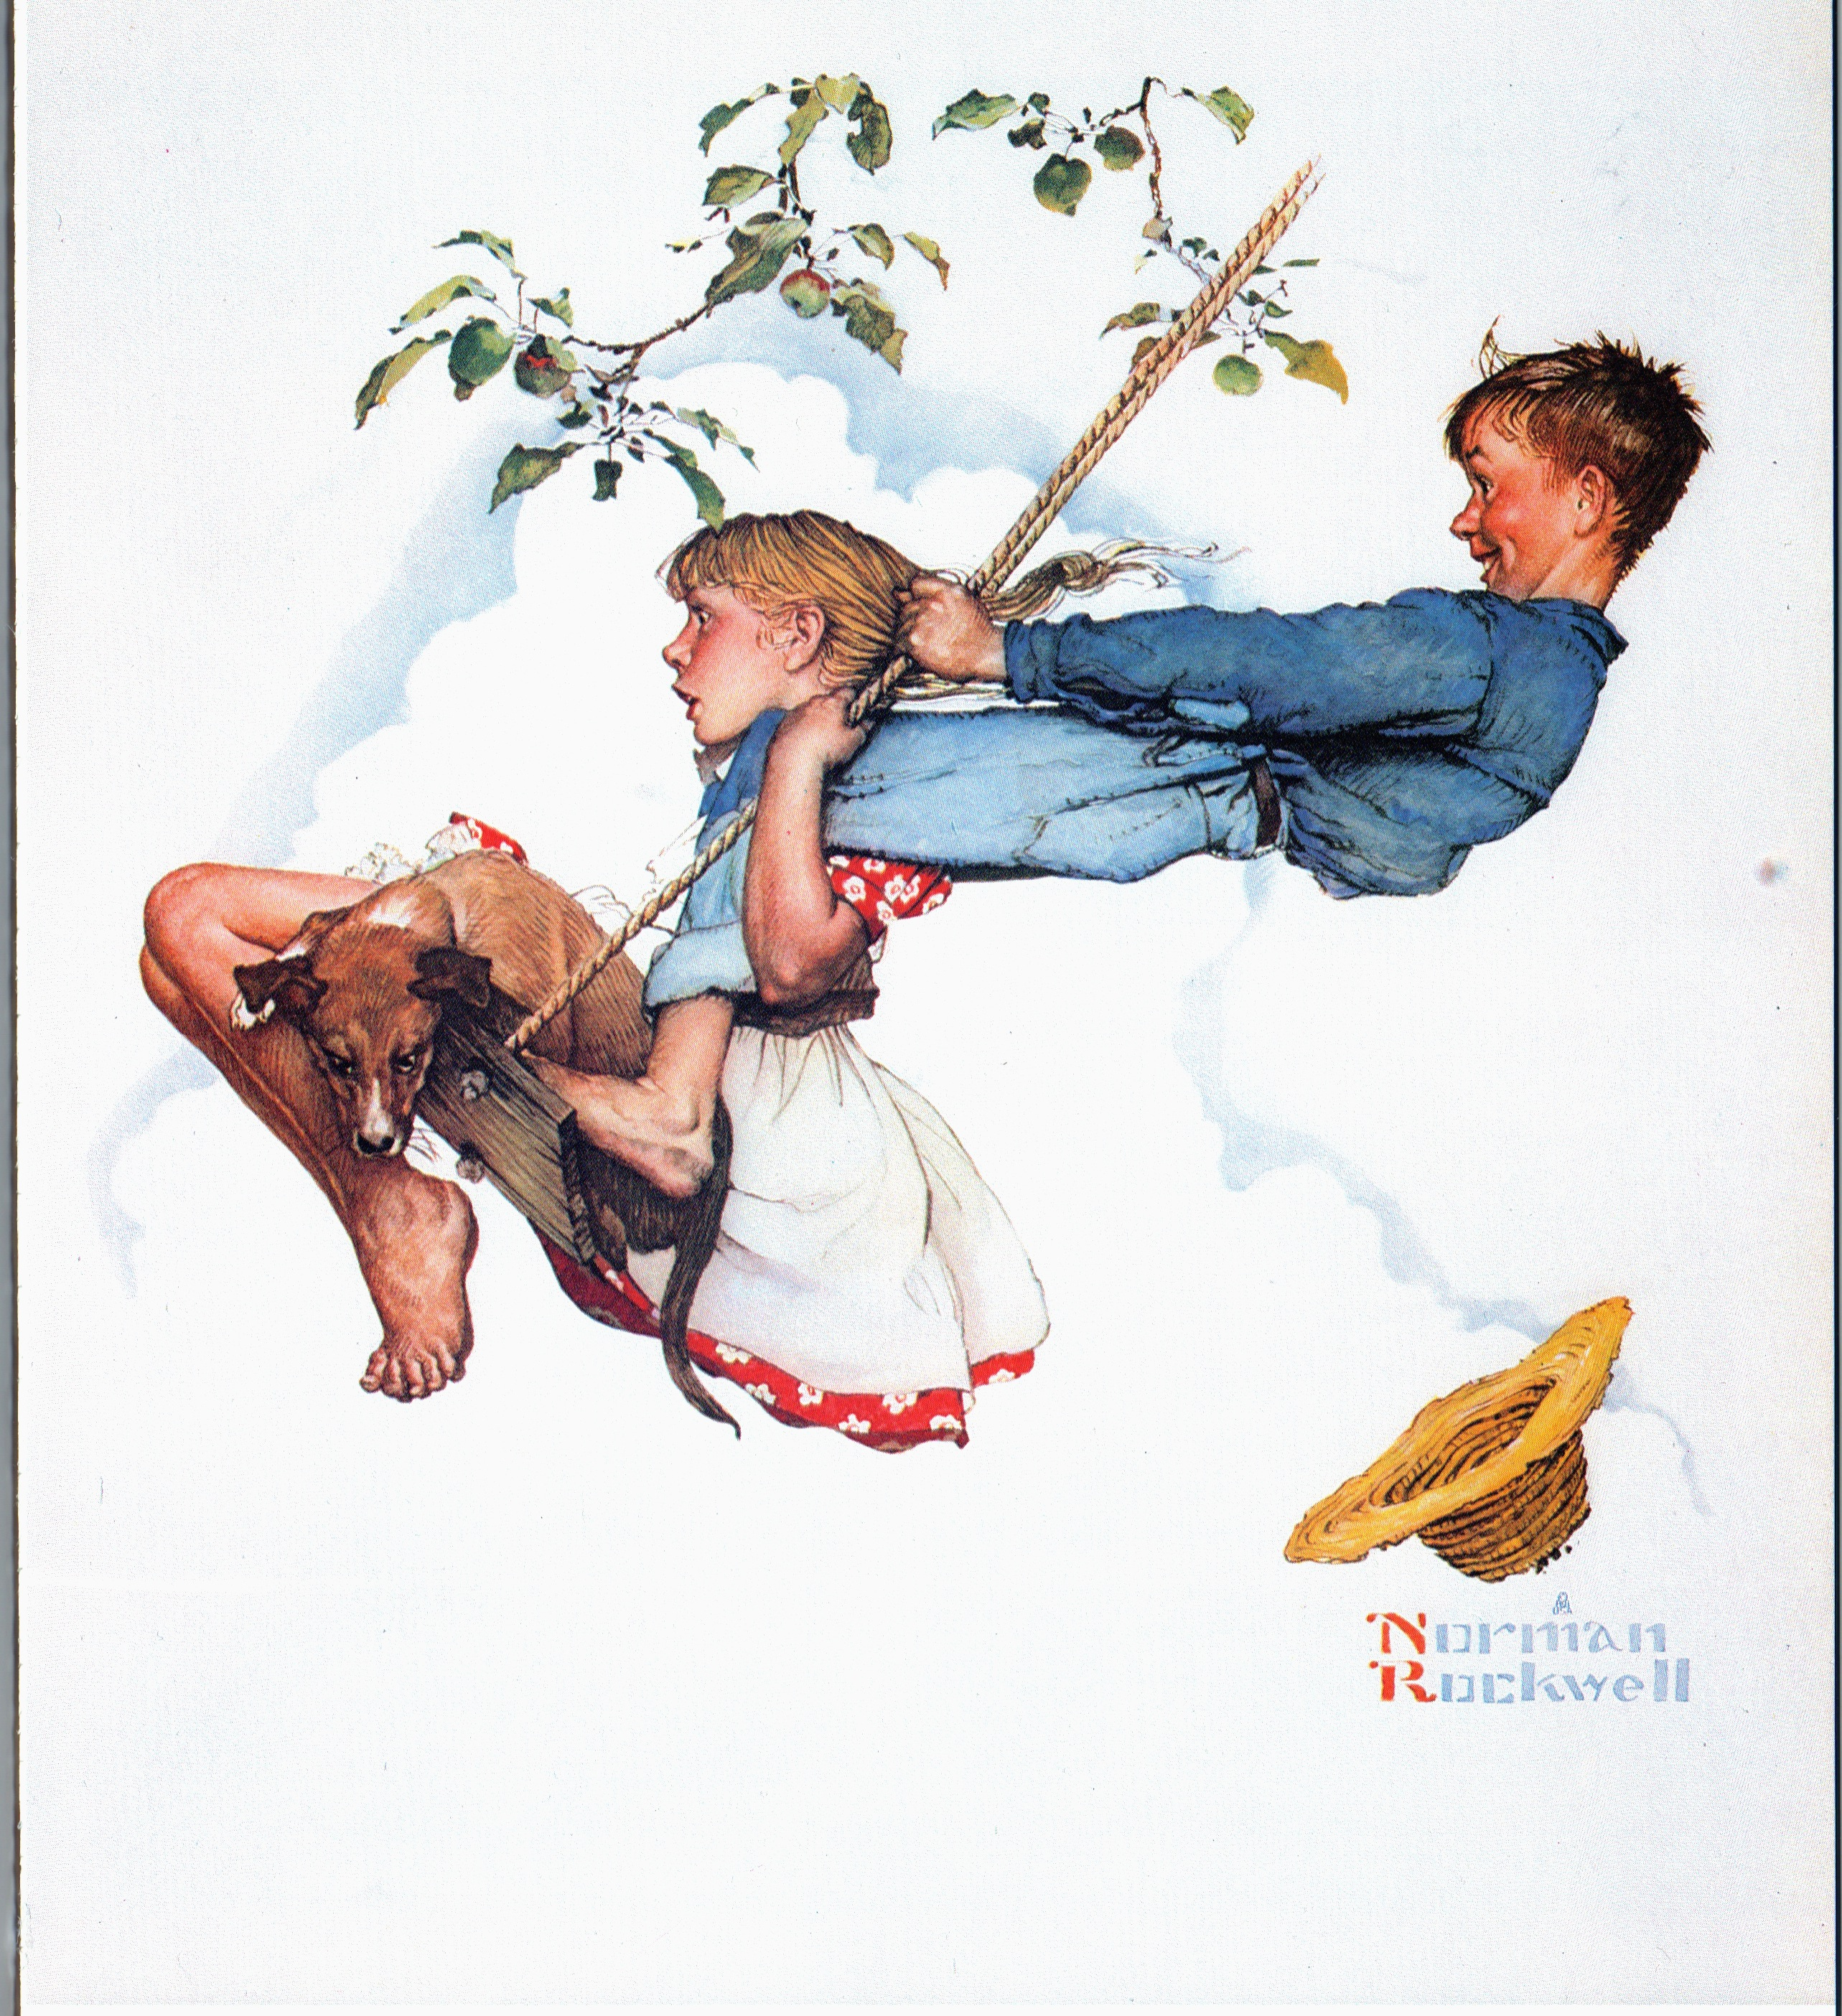 Based on this Norman Rockwell Four Seasons calendar painting.